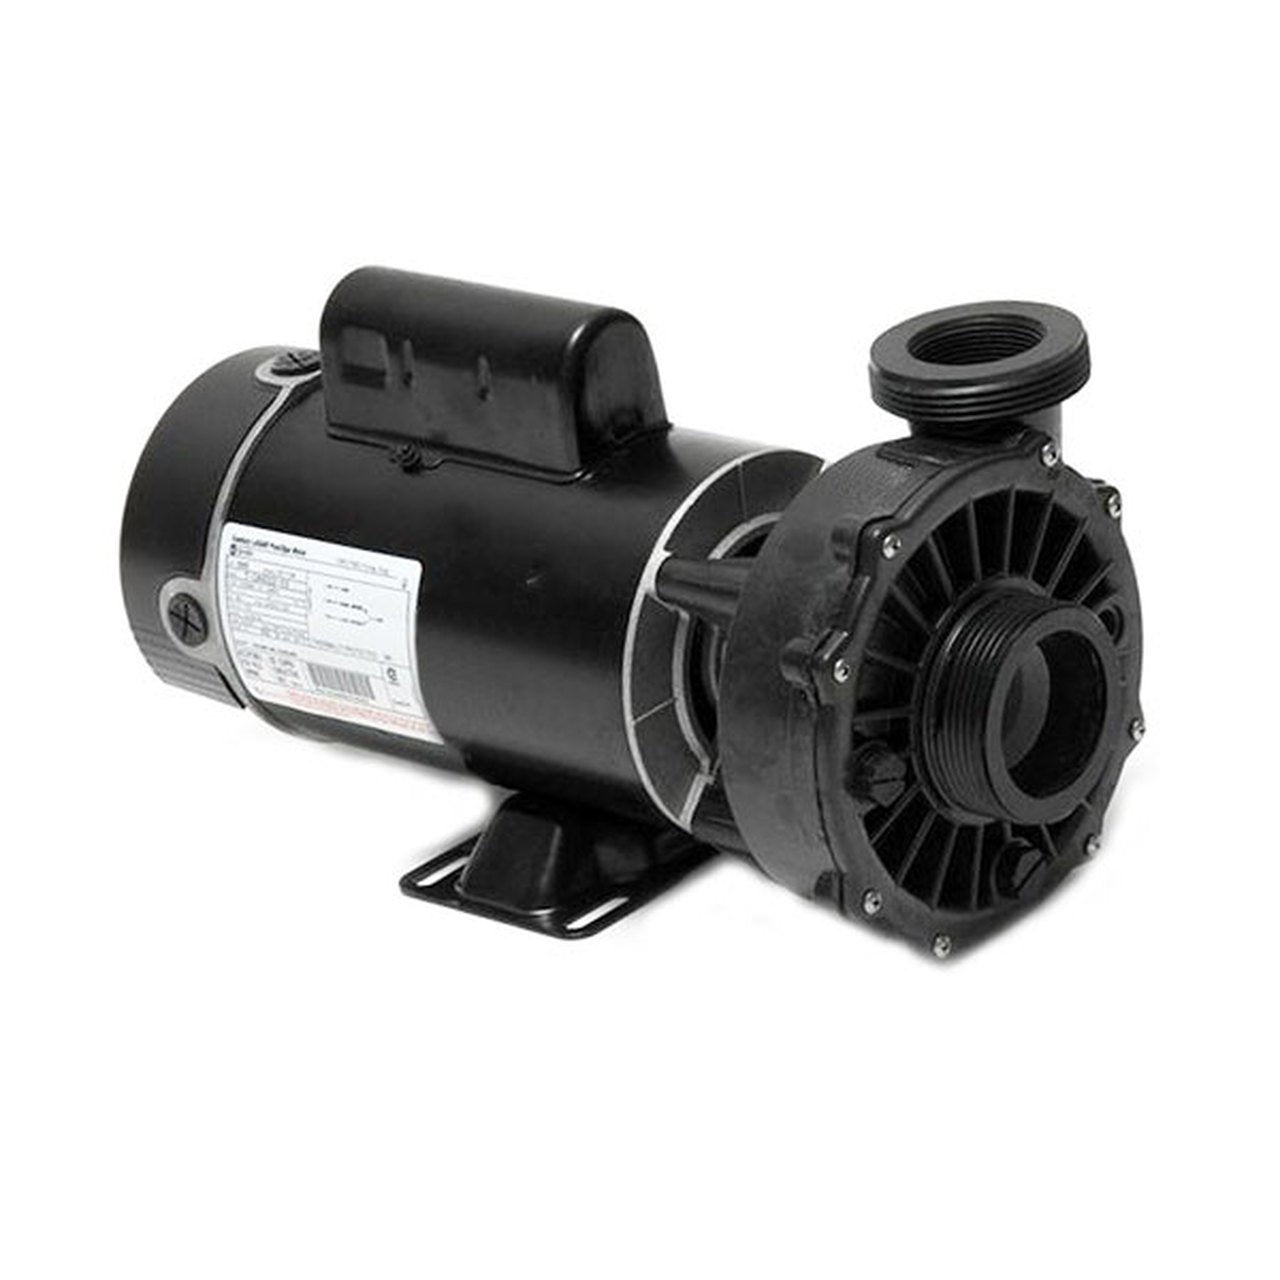 WaterWay Waterway hot tub pump Pool Store Canada Waterway Hi-Flo 2.0hp 2 Speed 220v pump - Pool Store Canada